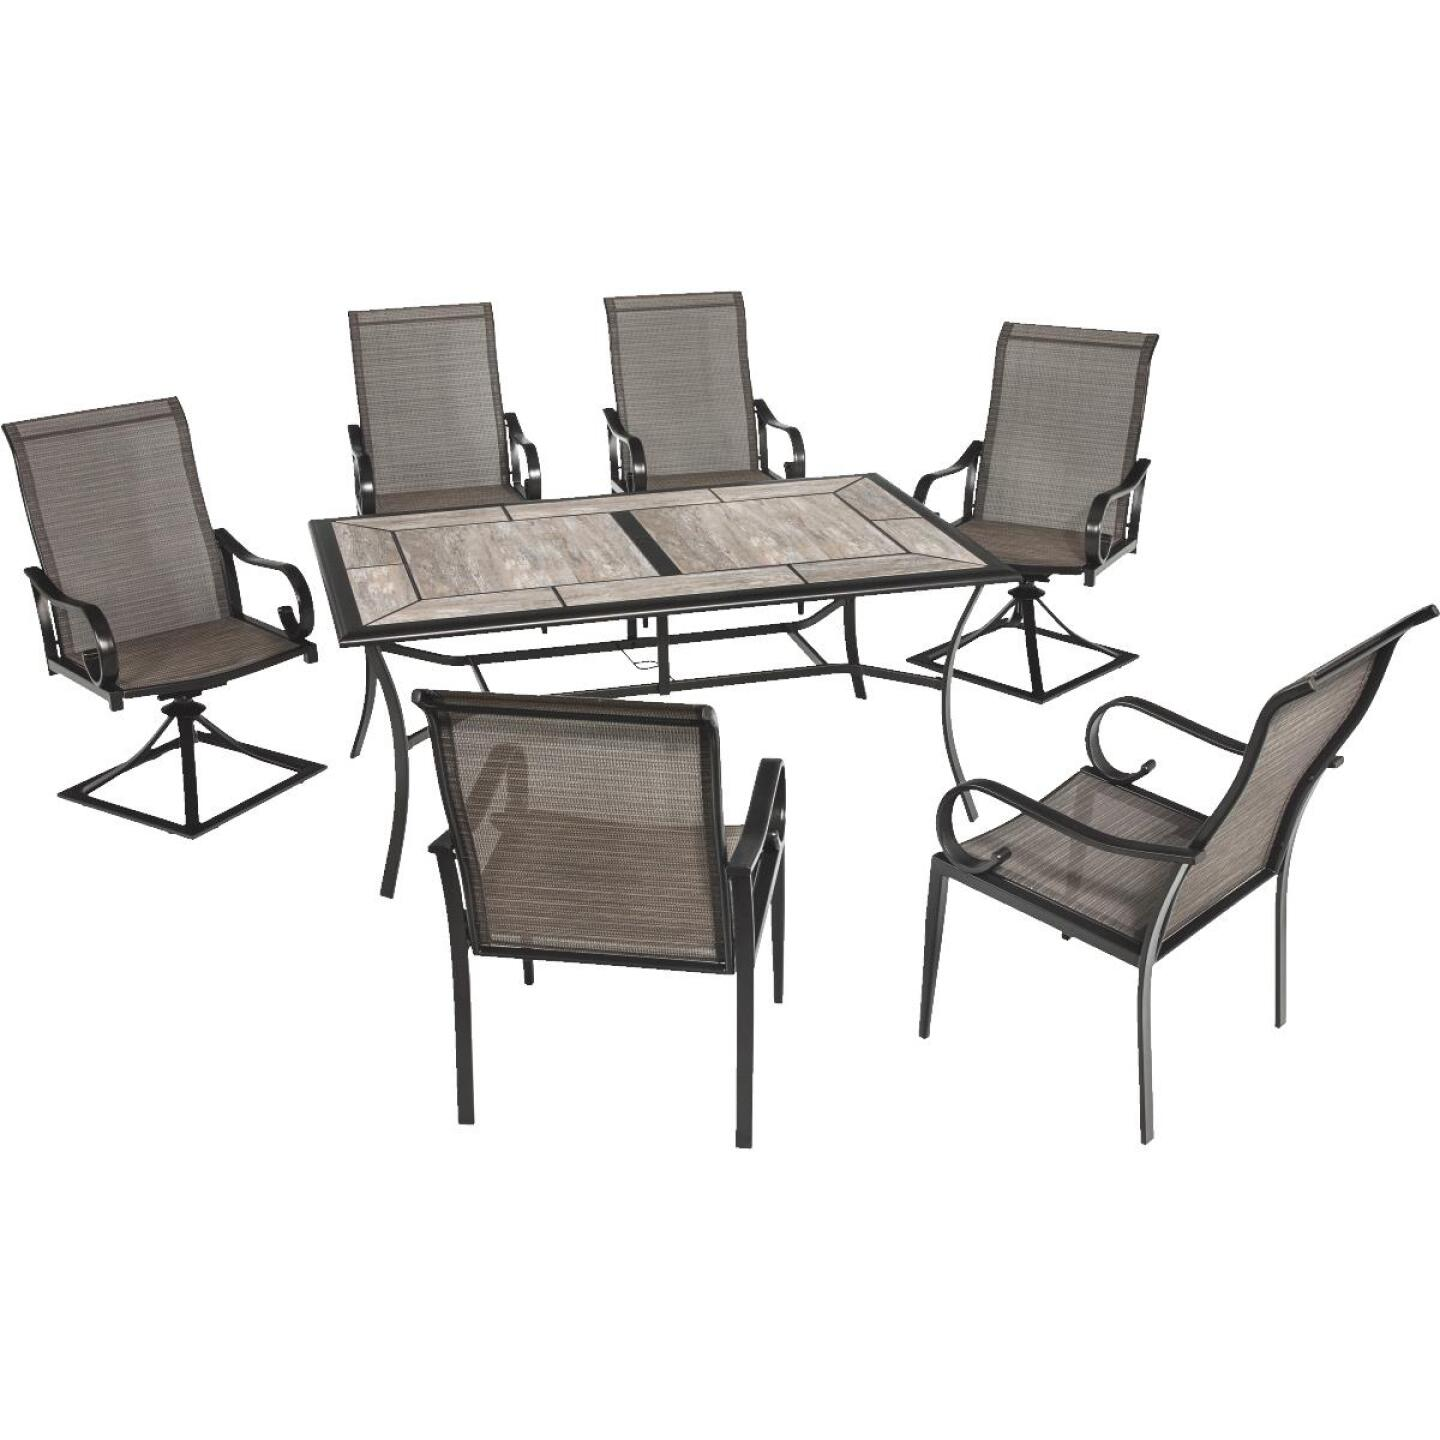 Outdoor Expressions Berkshire 7-Piece Dining Set Image 70